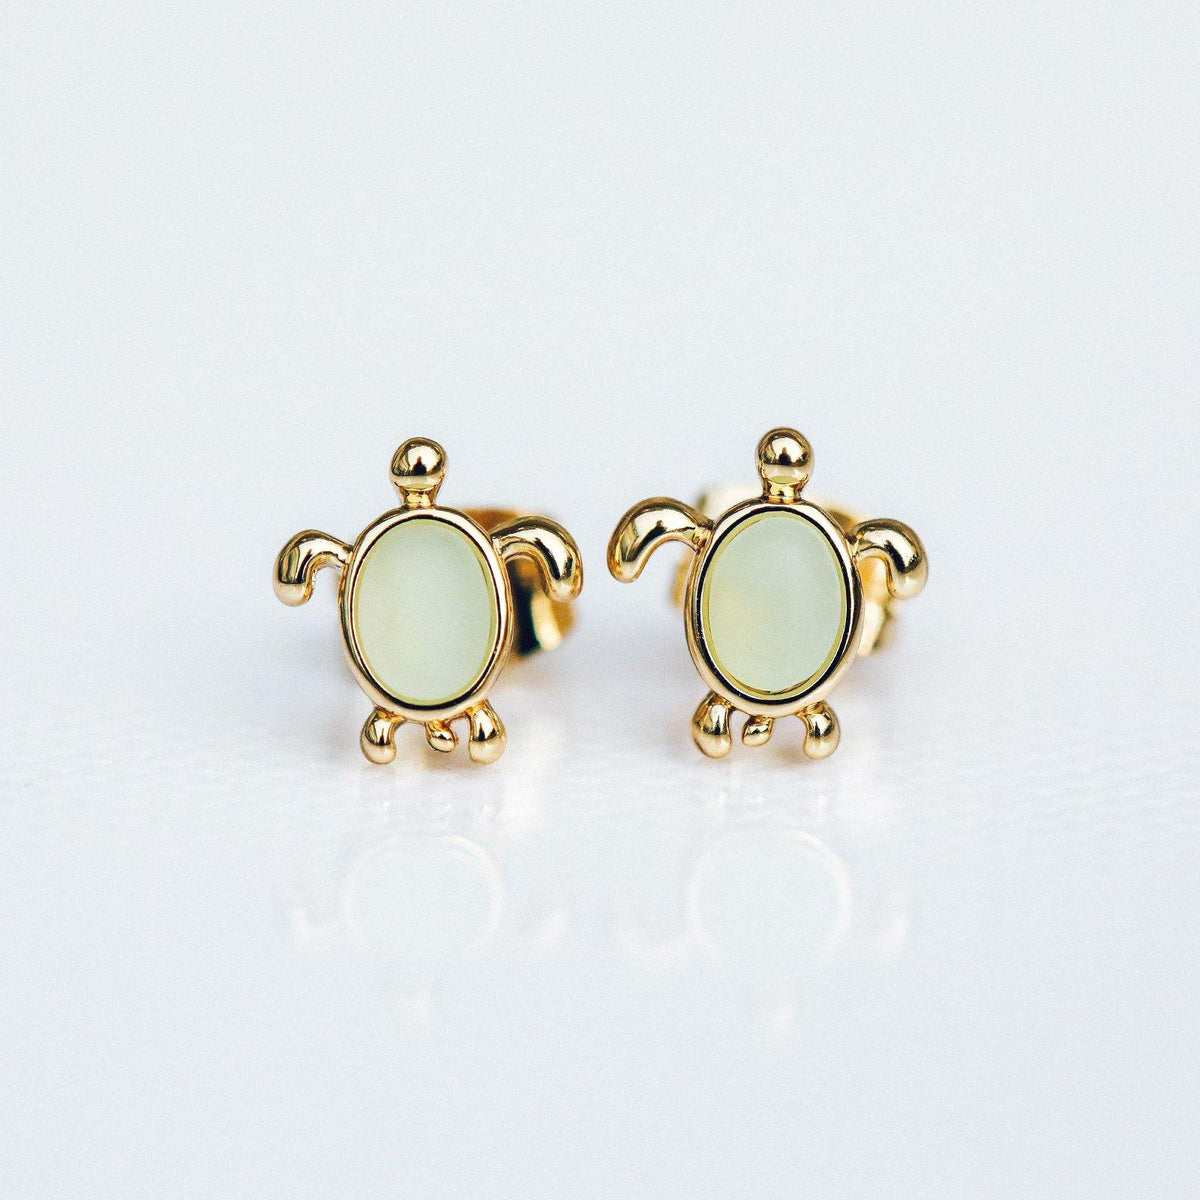 Sea Turtle Stud Earrings 6